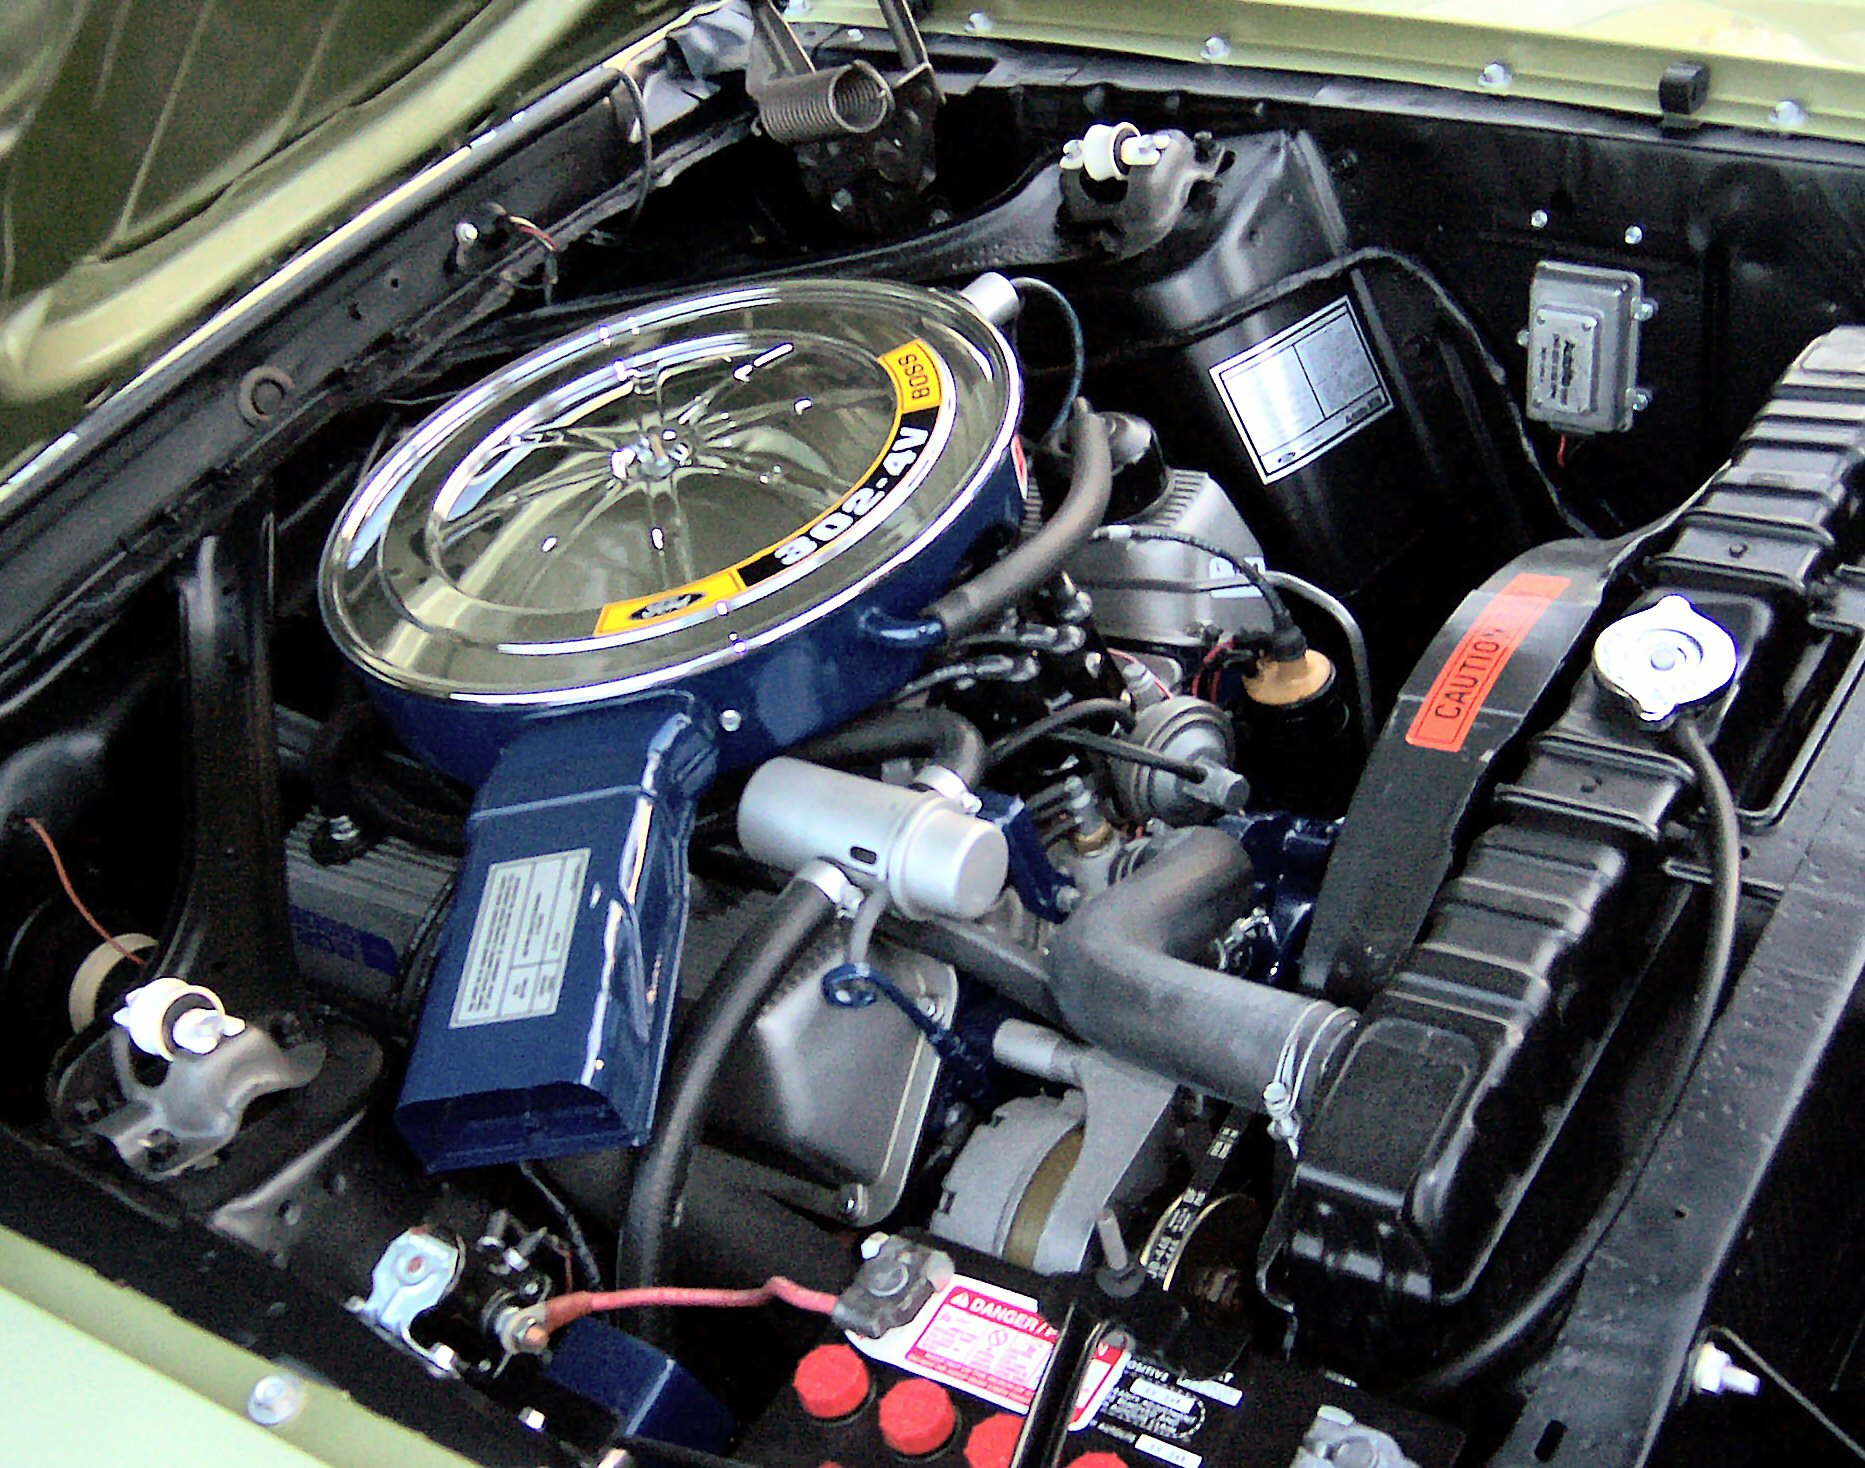 Ford Boss 302 engine - Wikipedia